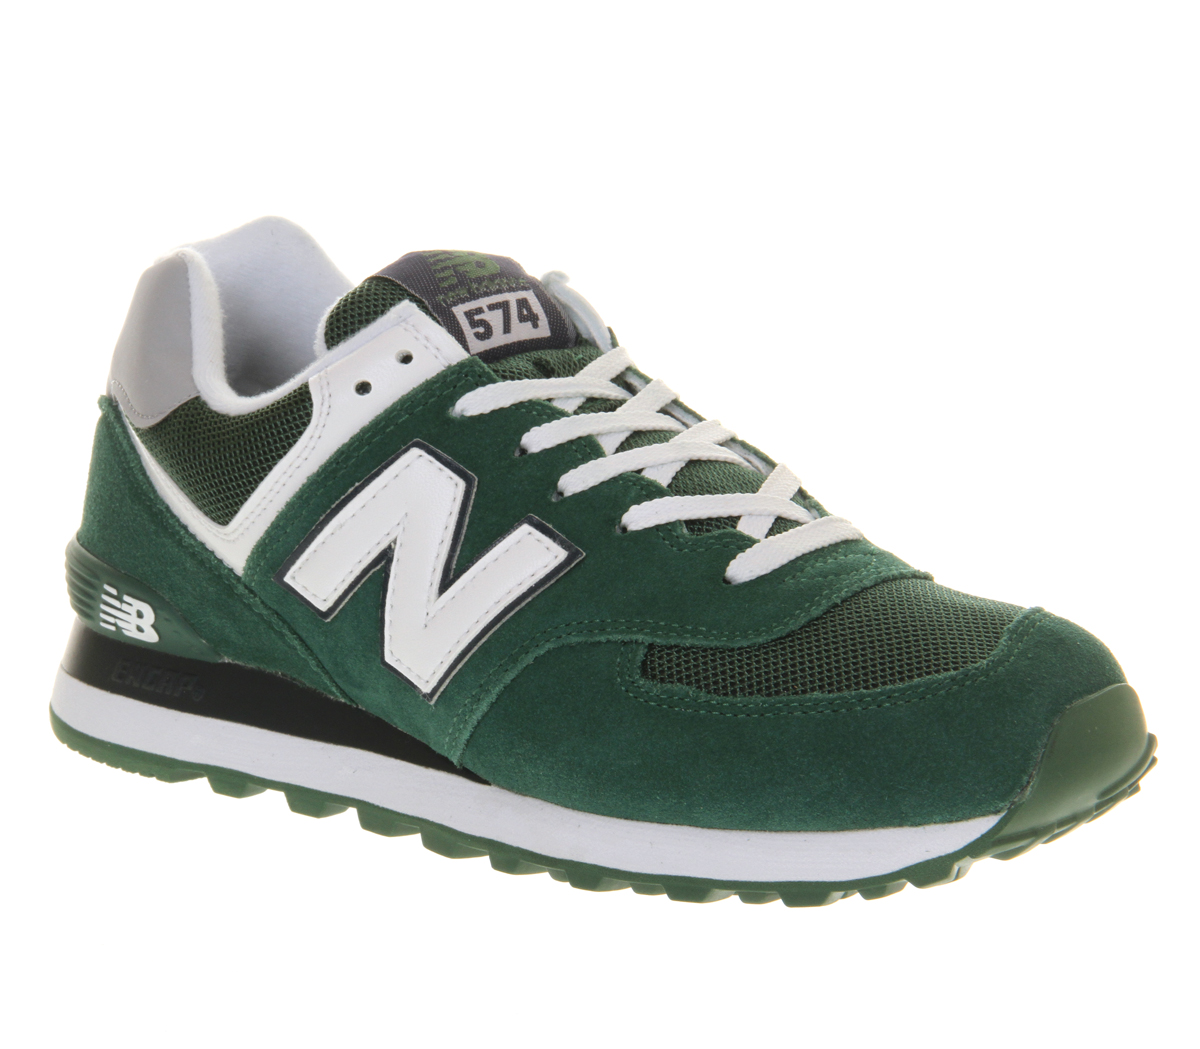 mens new balance new balance m574 green white trainers. Black Bedroom Furniture Sets. Home Design Ideas